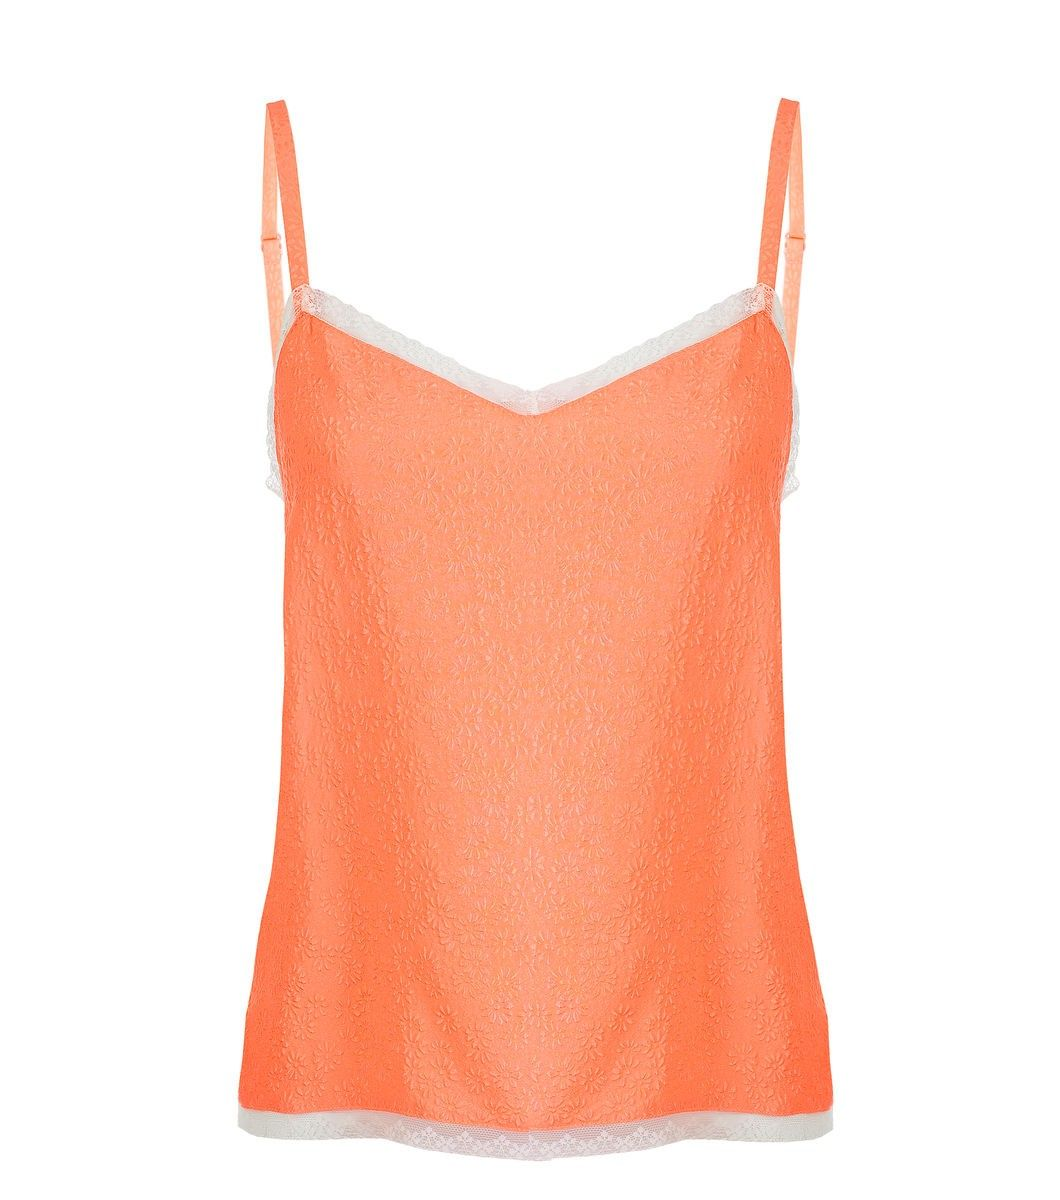 Alannah hill to monte carlo we go cami http shop alannahhill